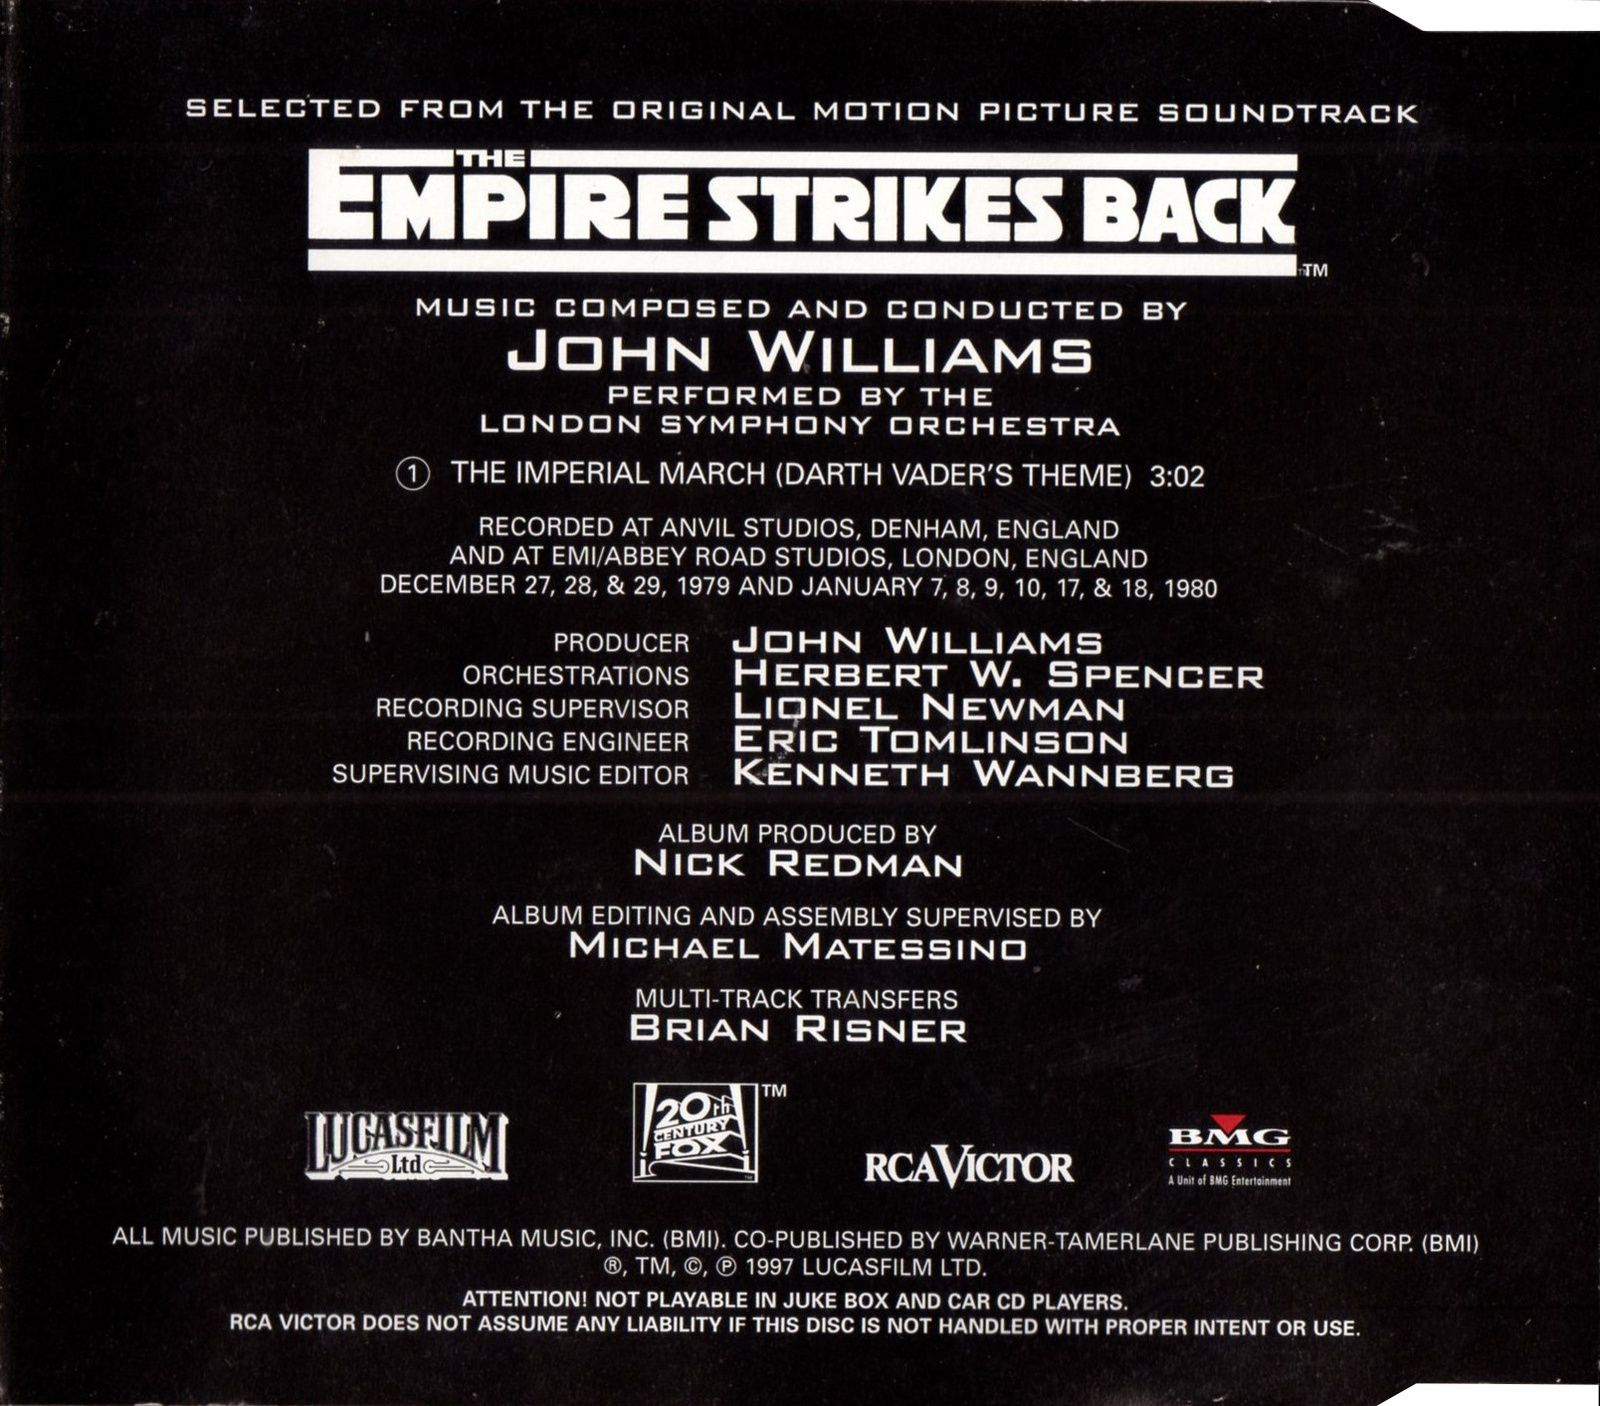 John Williams - The Imperial March - Darth Vader's Theme mCD (BMG - 1997)